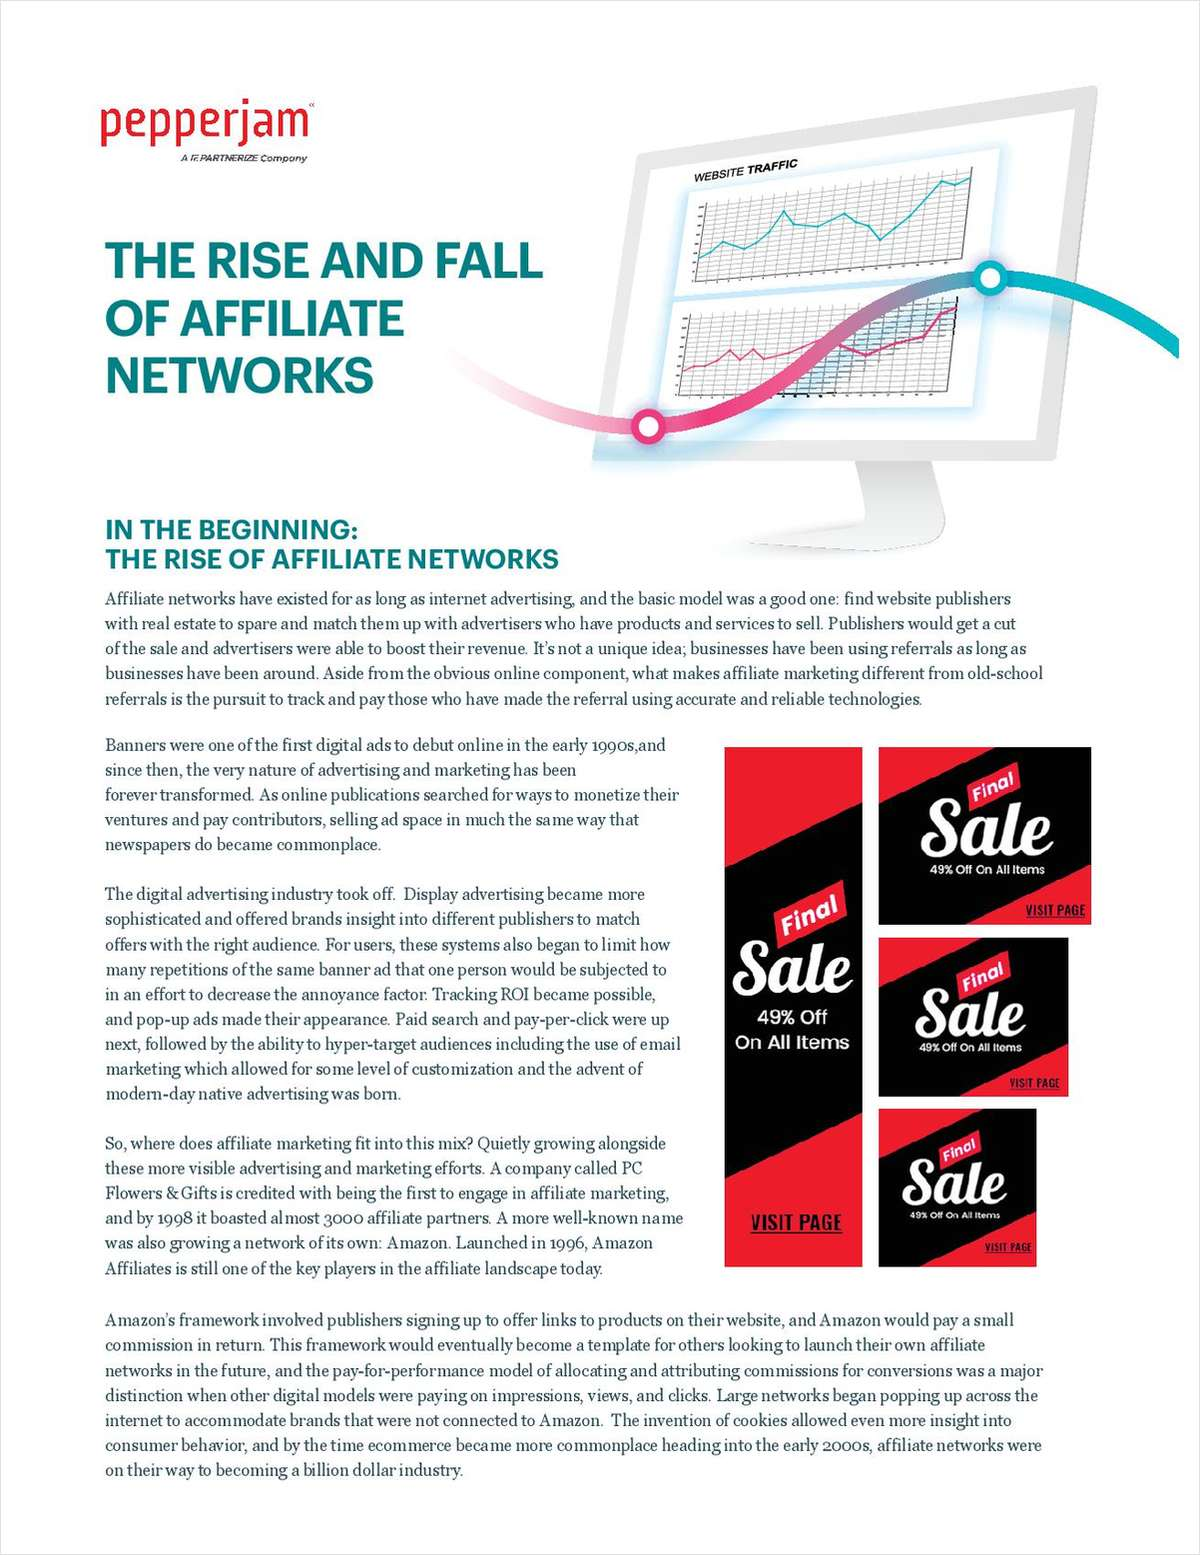 The Rise and Fall of Affiliate Networks